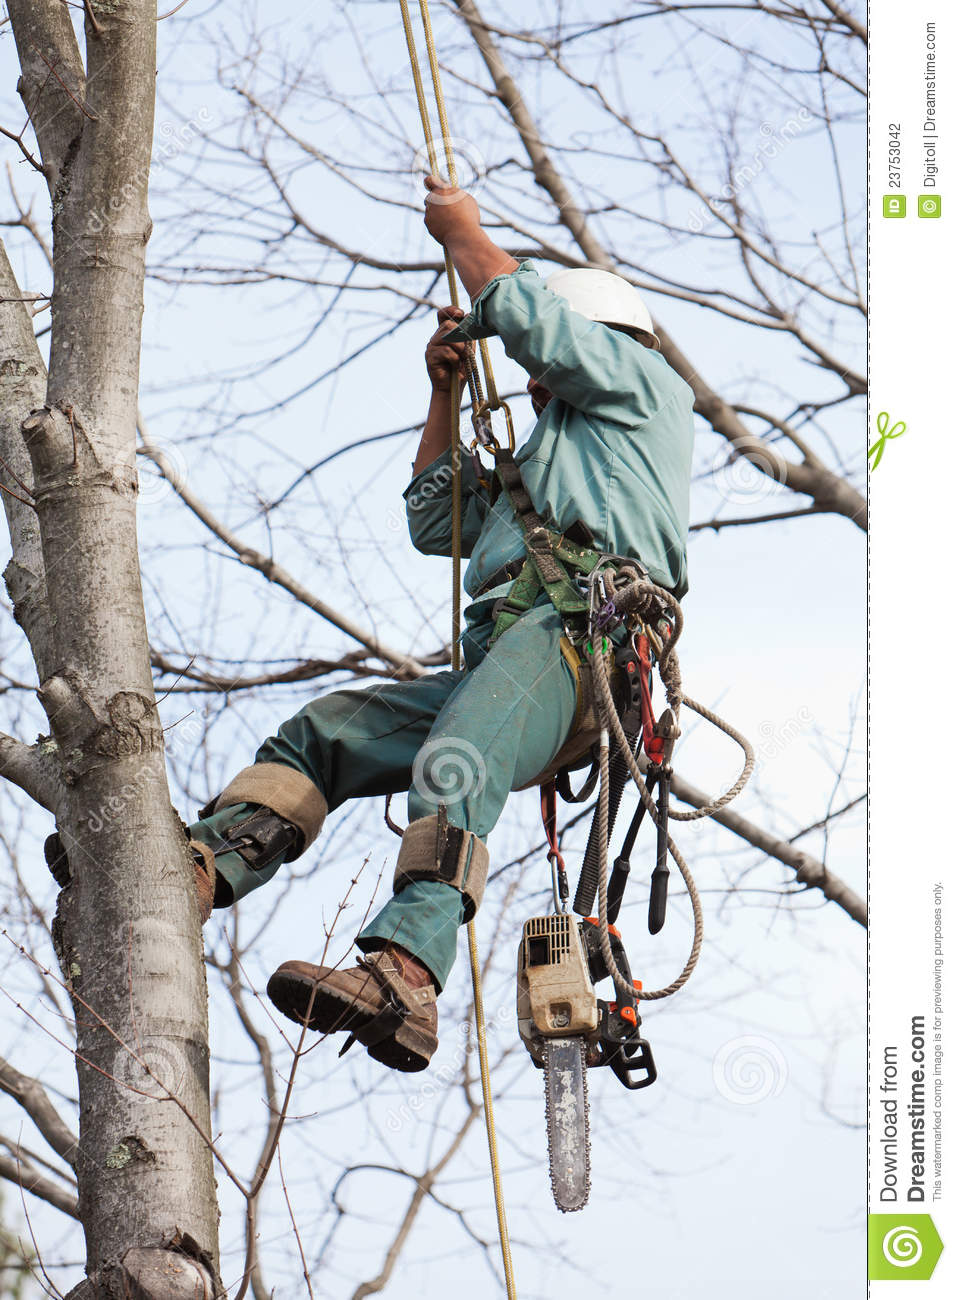 Worker being Hoisted up into a Tree